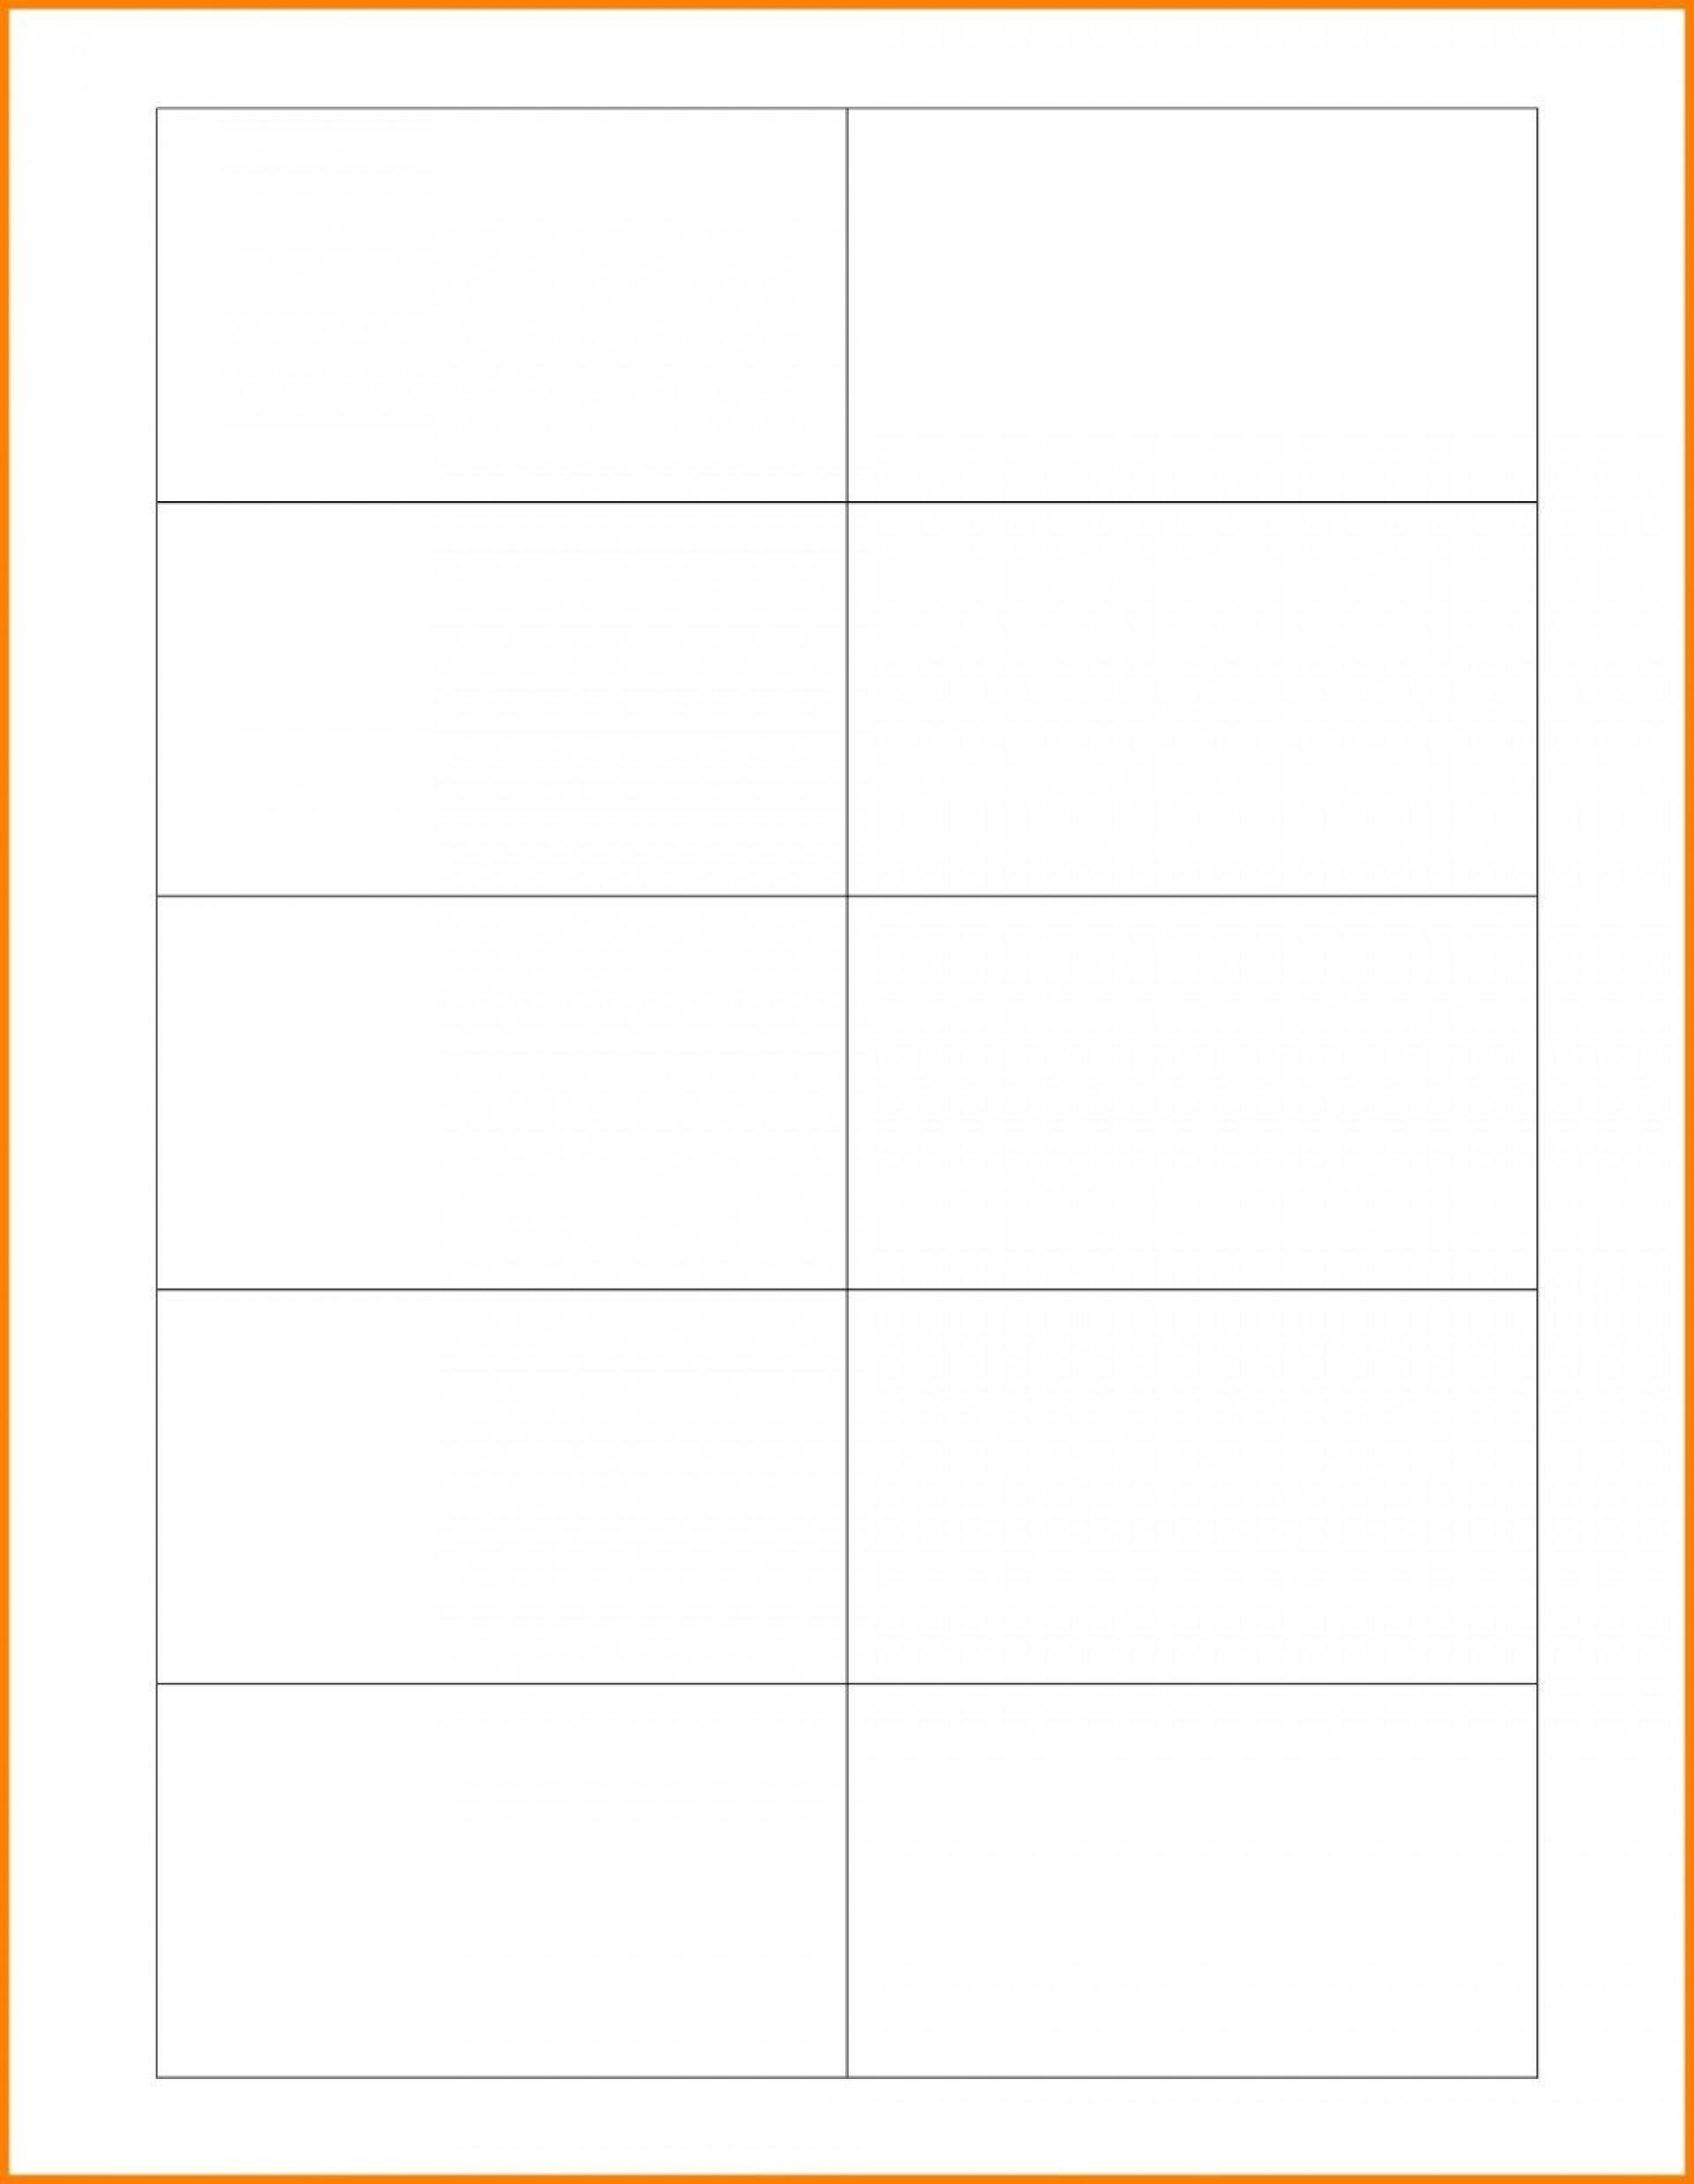 003 Marvelou Plain Busines Card Template Photo  White Free Download Blank Printable Word 20101920